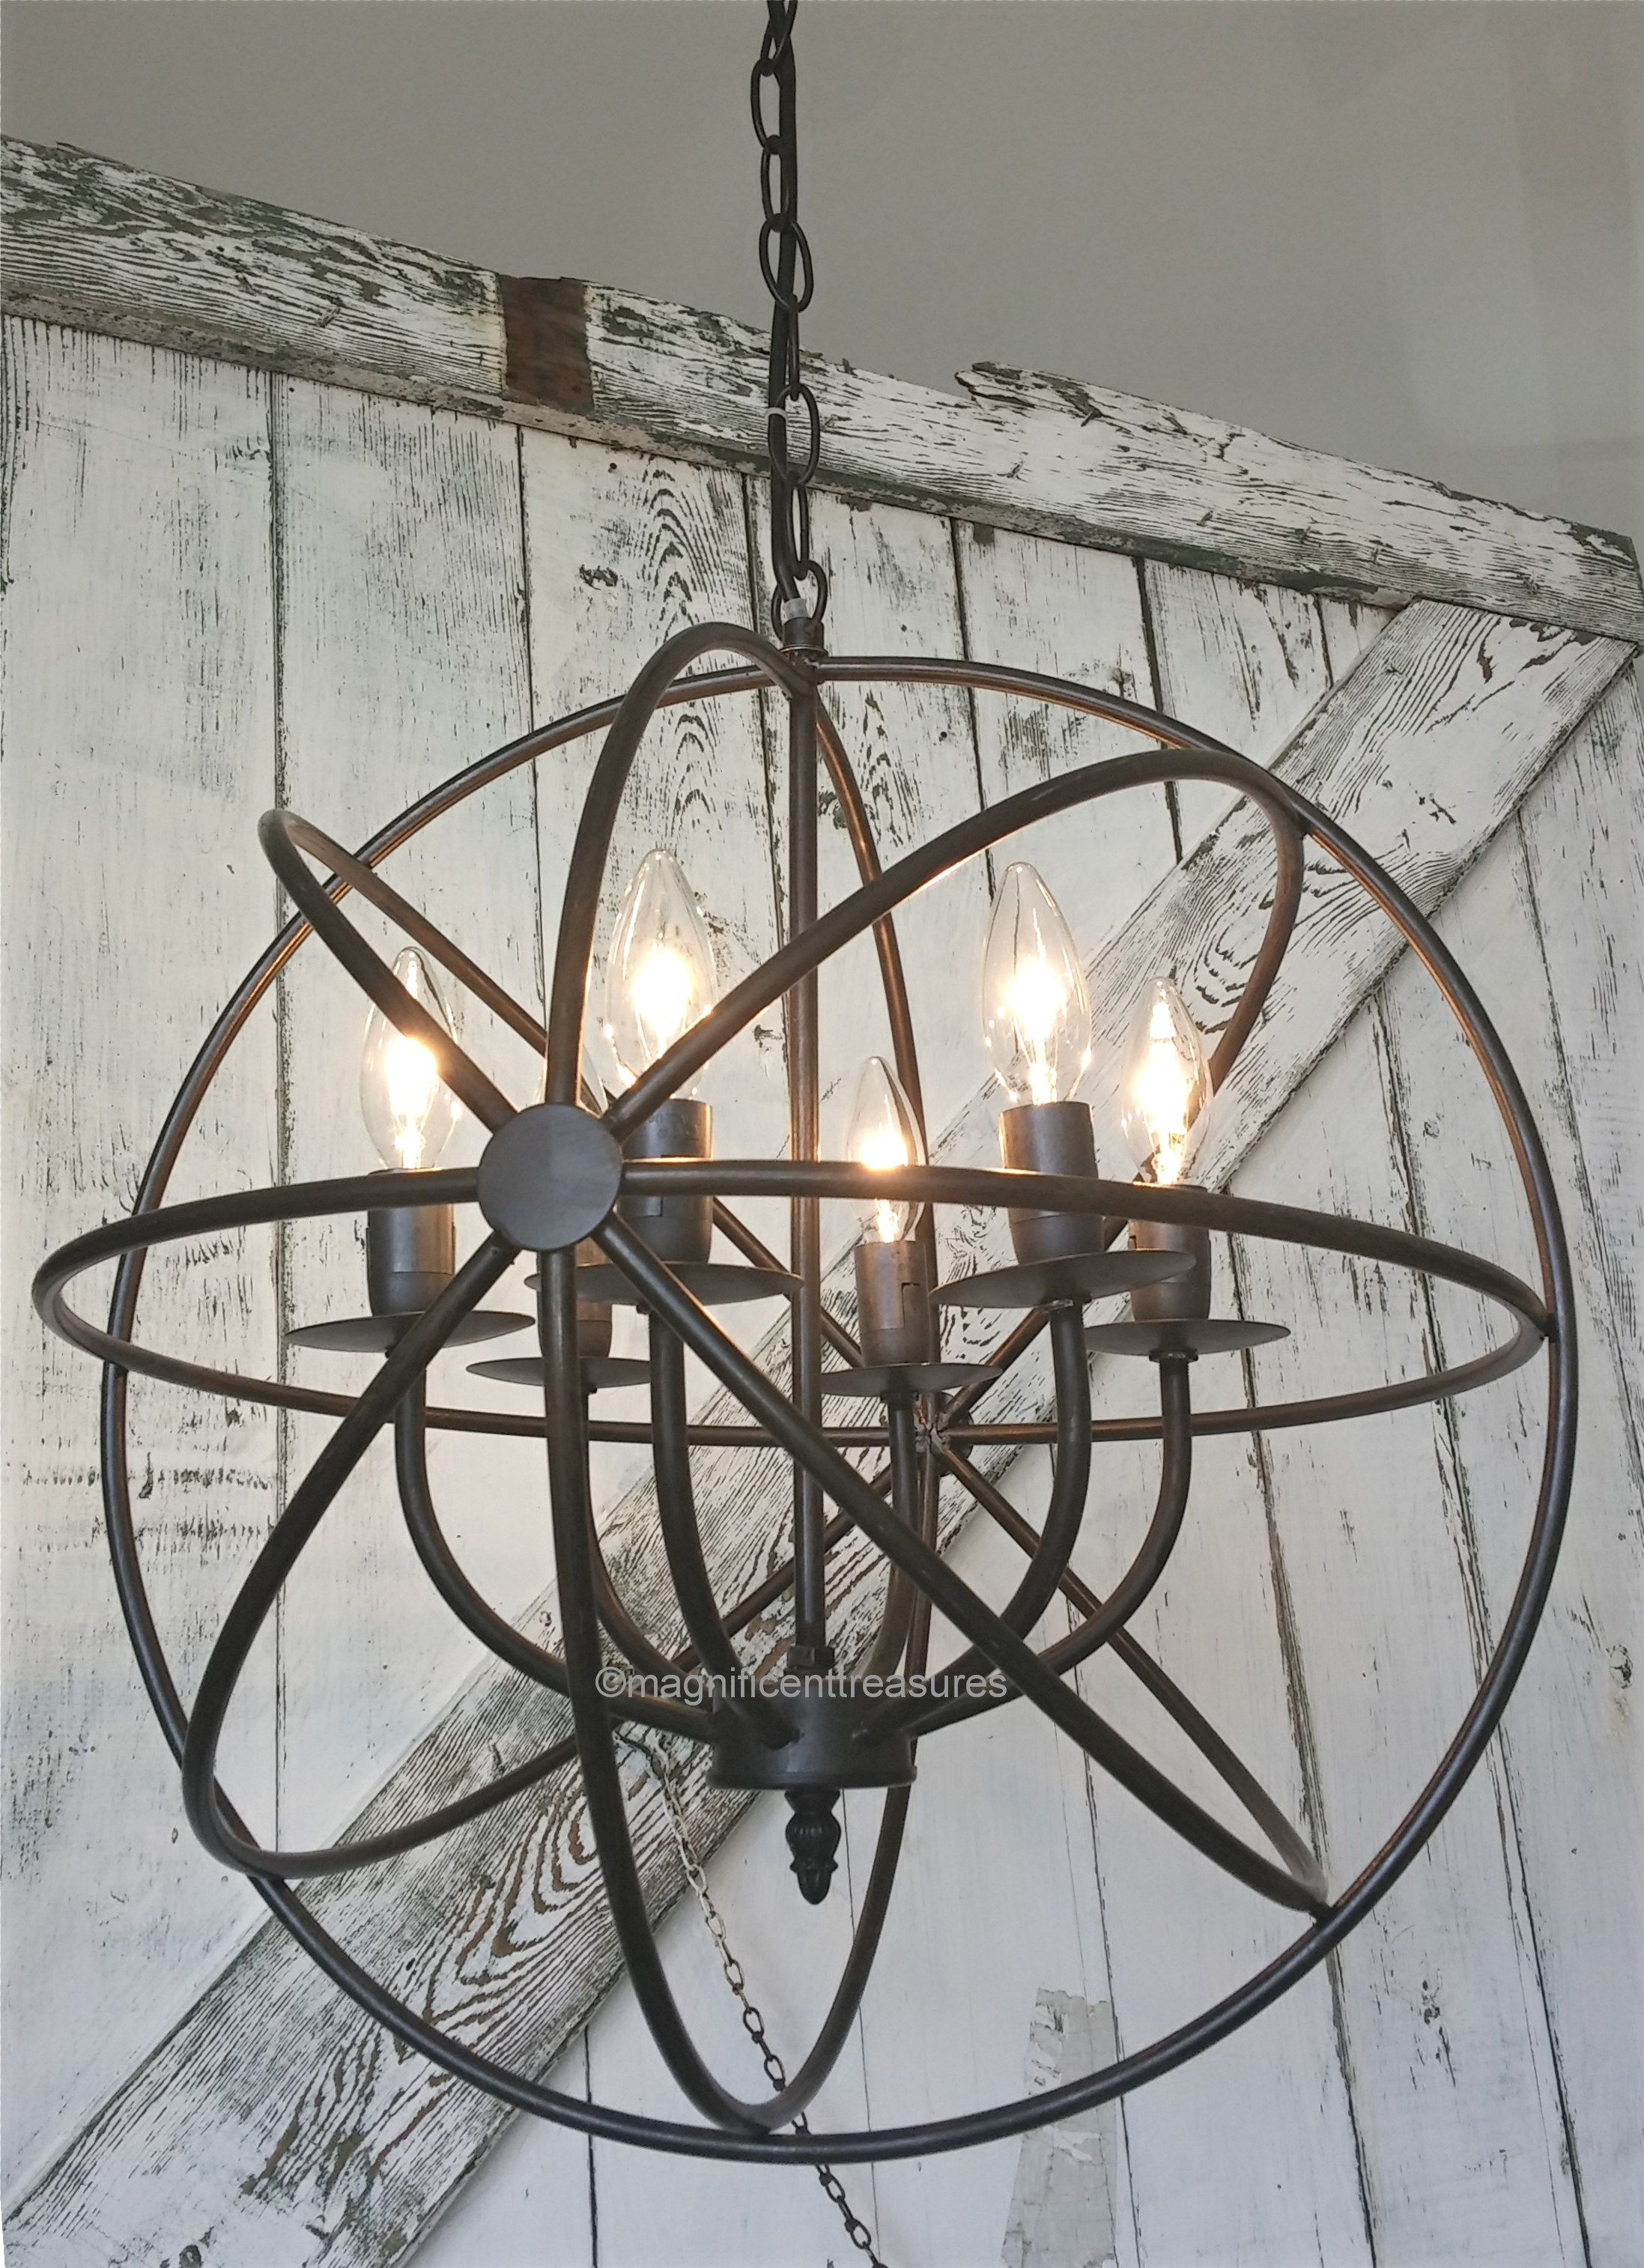 Industrial rustic metal round armillary sphere chandelier light industrial rustic metal round armillary sphere chandelier light fixture arubaitofo Image collections